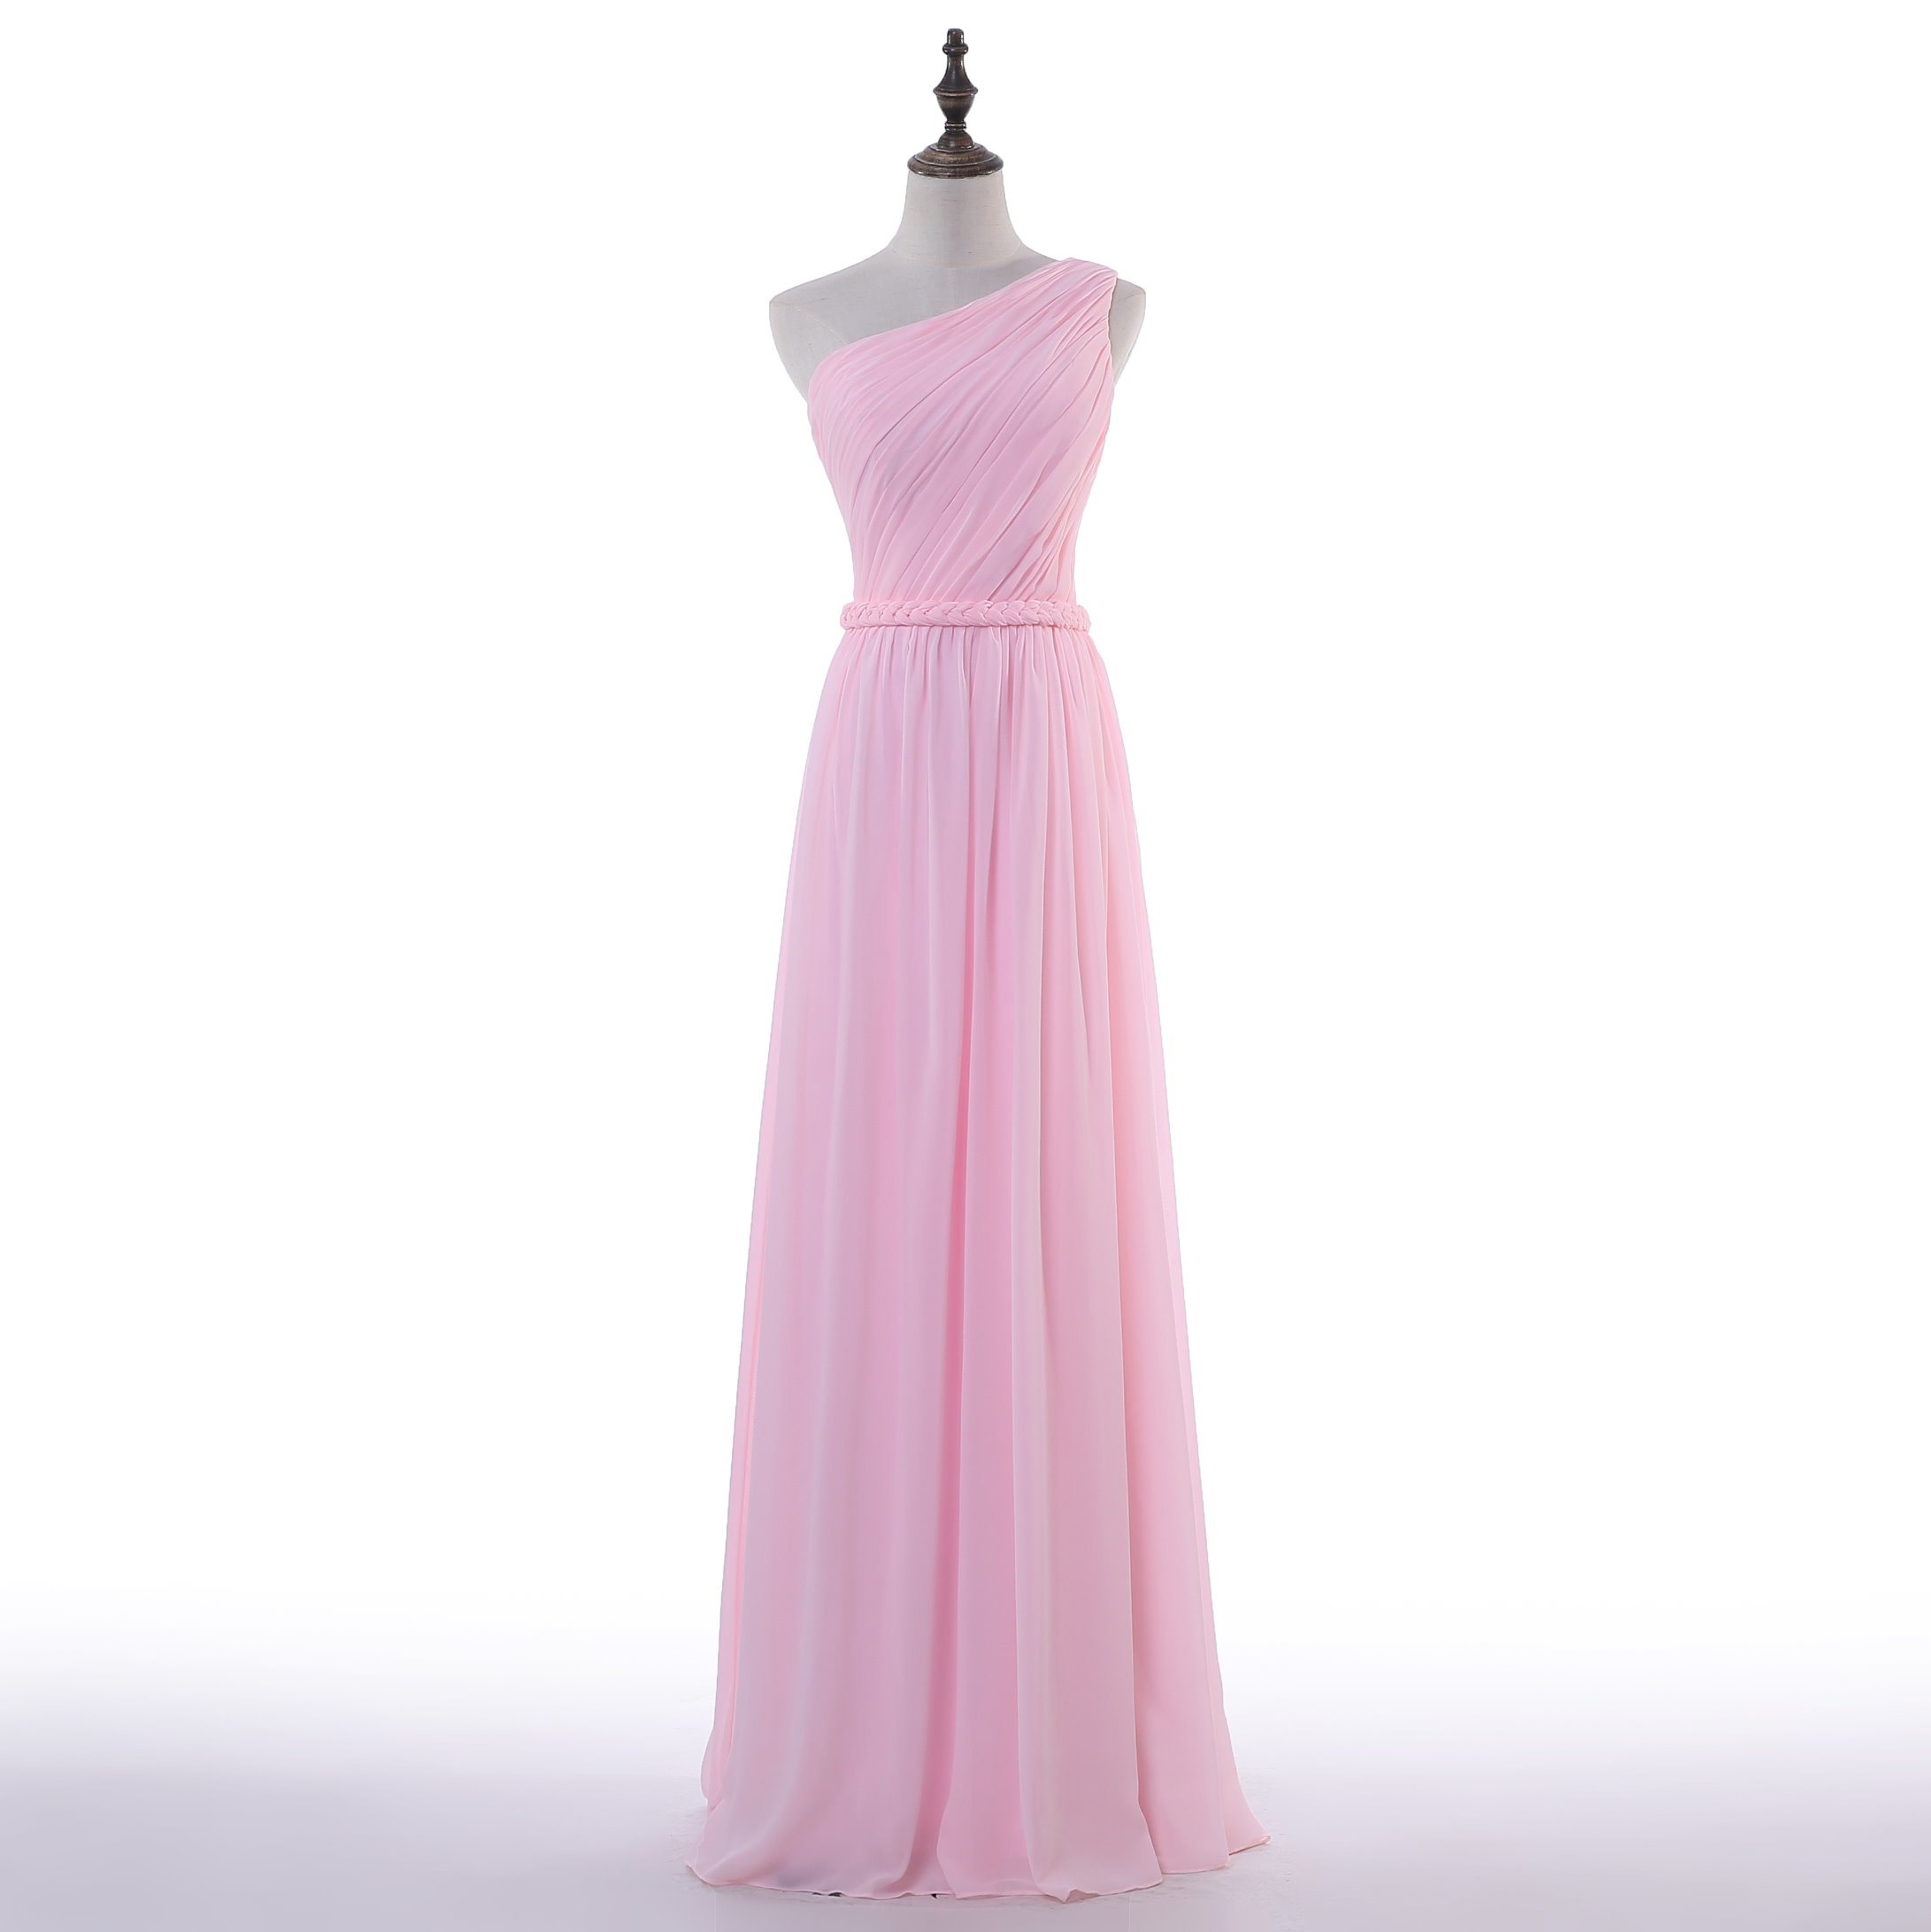 Aoliweiya New Standard Size Chiffon Pink Bridesmaid Dress